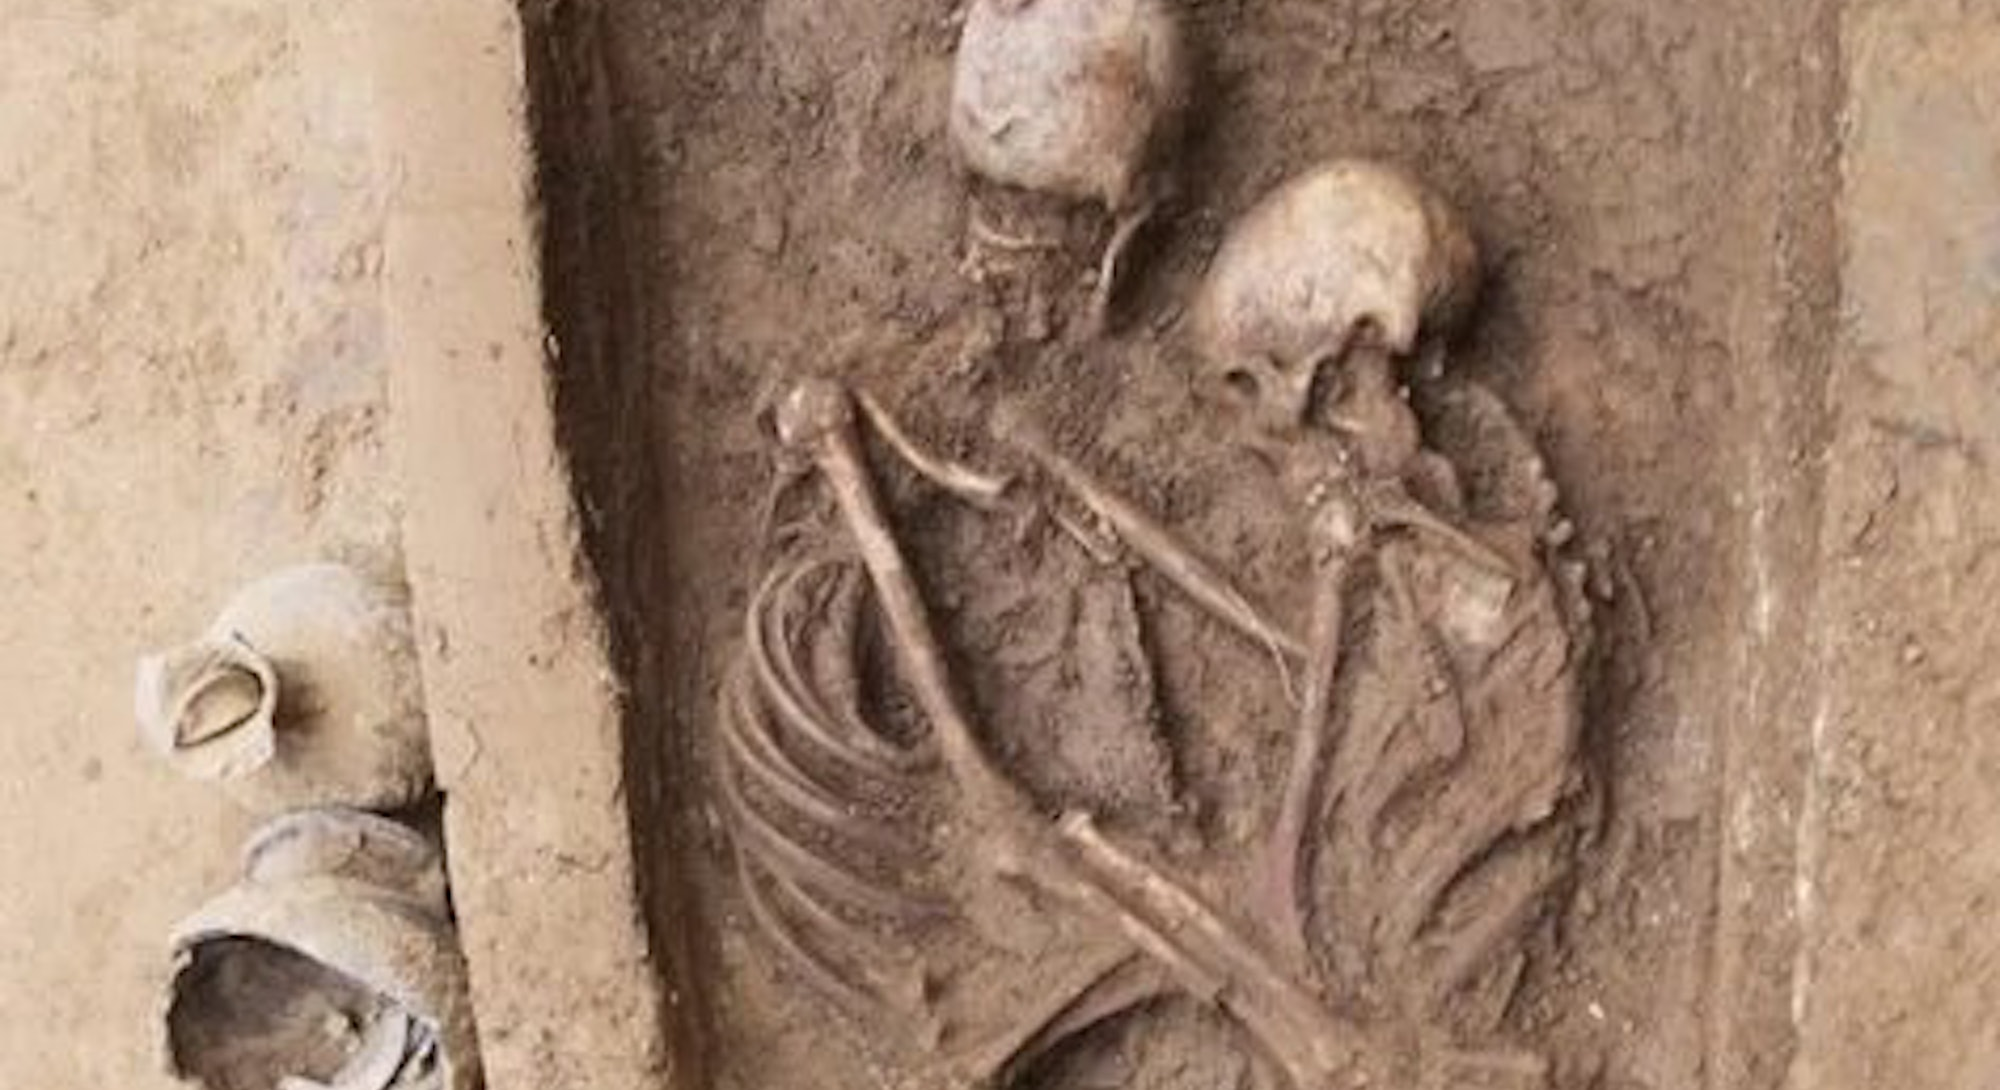 An illustration of an ancient Chinese couple in an embrace